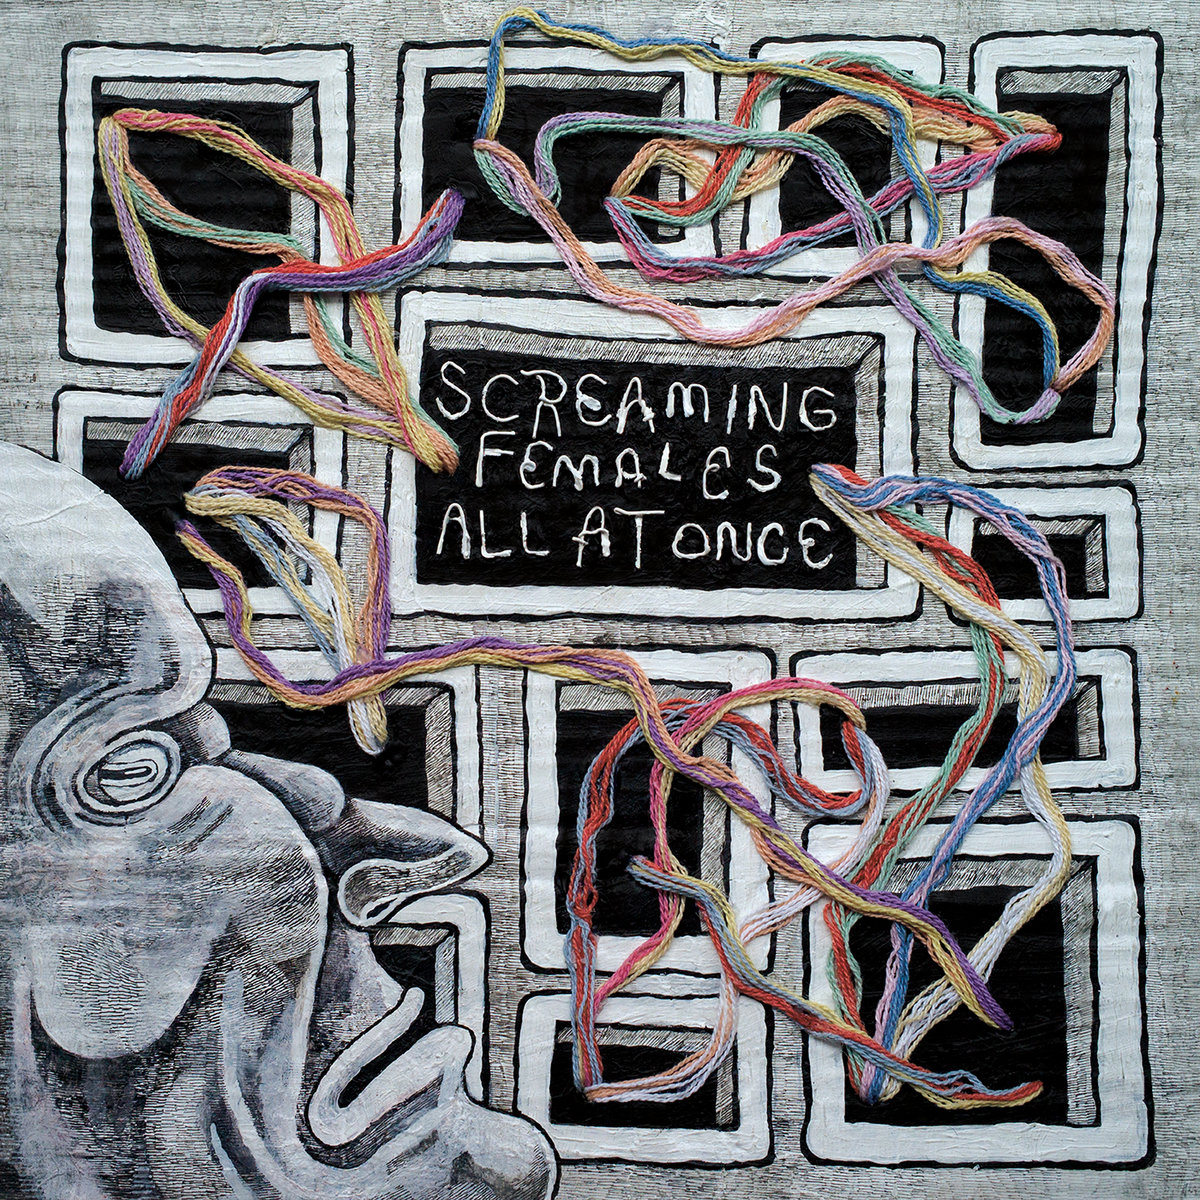 23. Screaming Females - All At Once